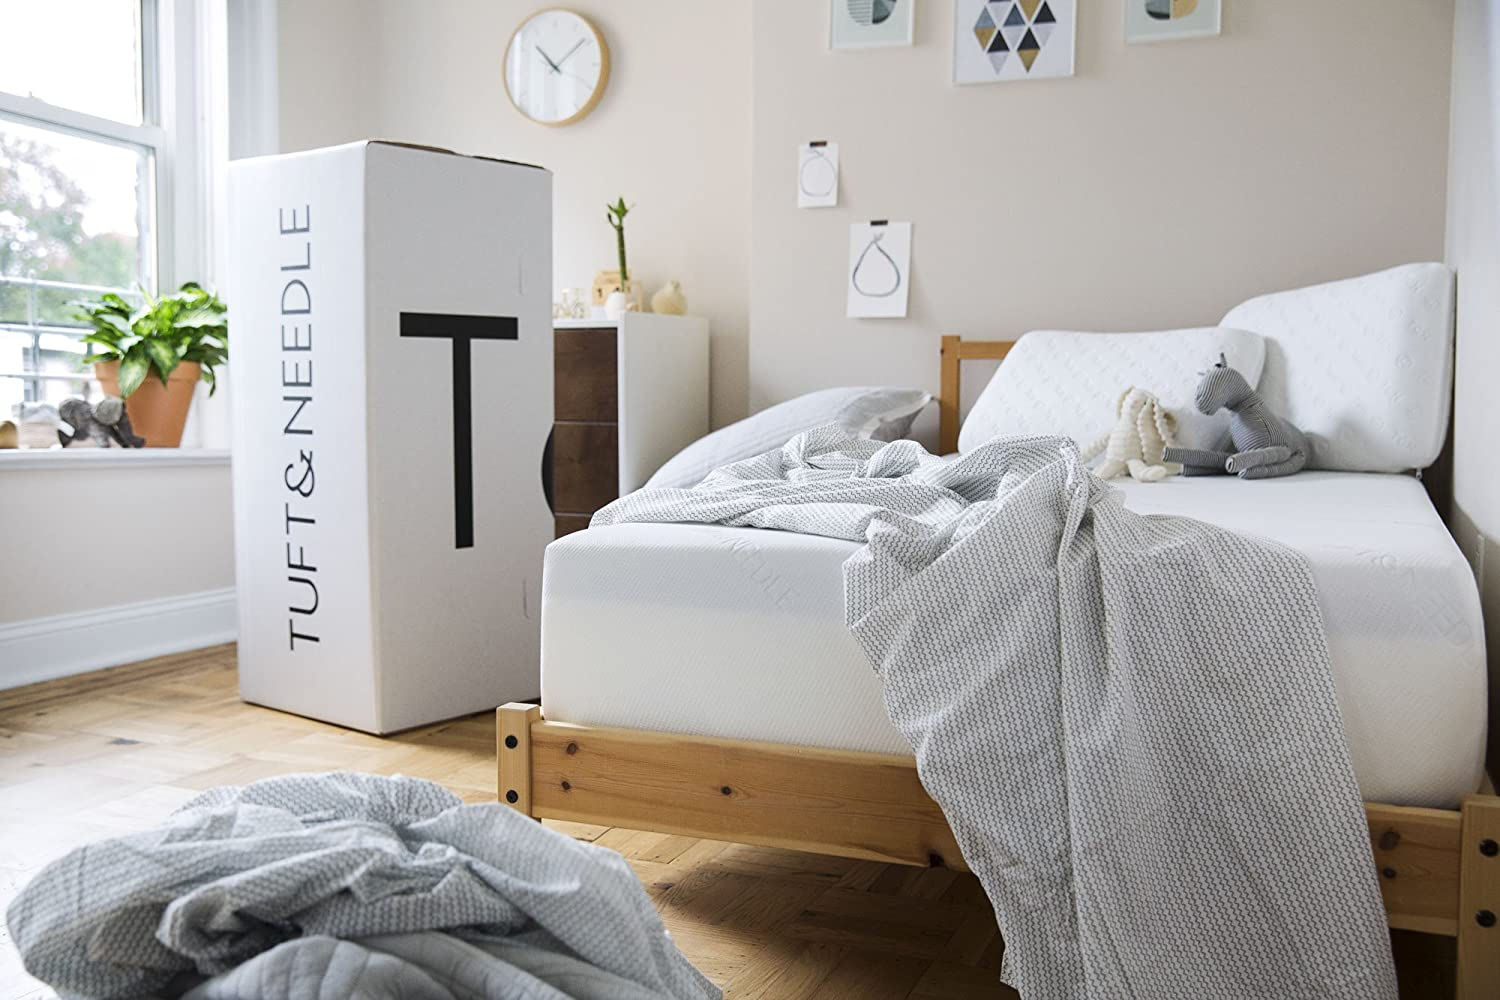 Tuft & Needle Mattress, Full Mattress with T&N Adaptive Foam